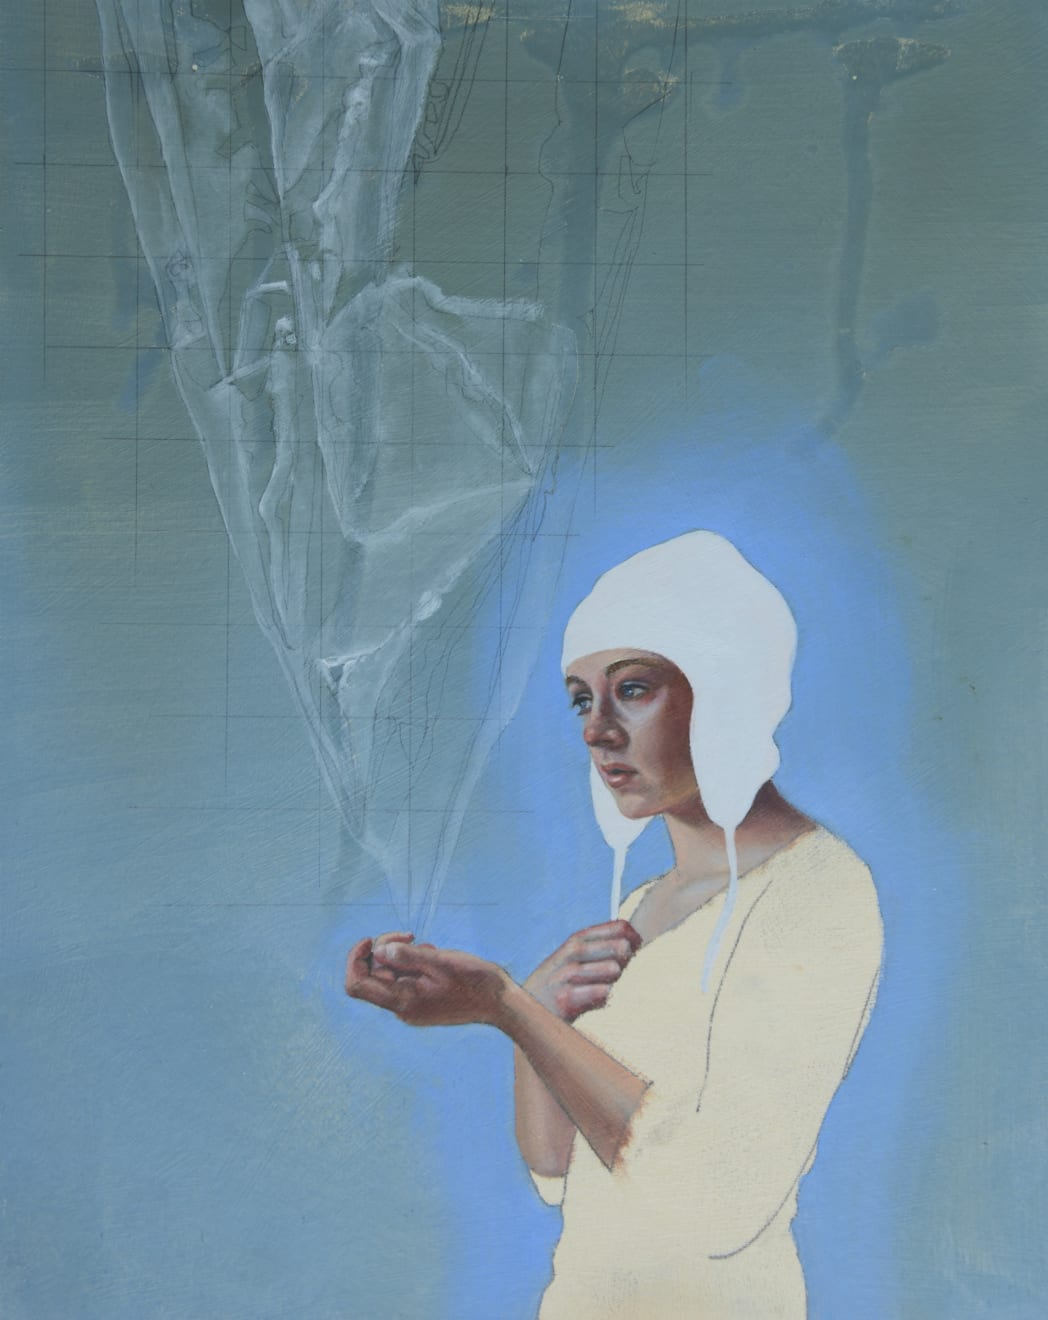 Pippa Young, Study for: Chasing a spider's shadow, 2016